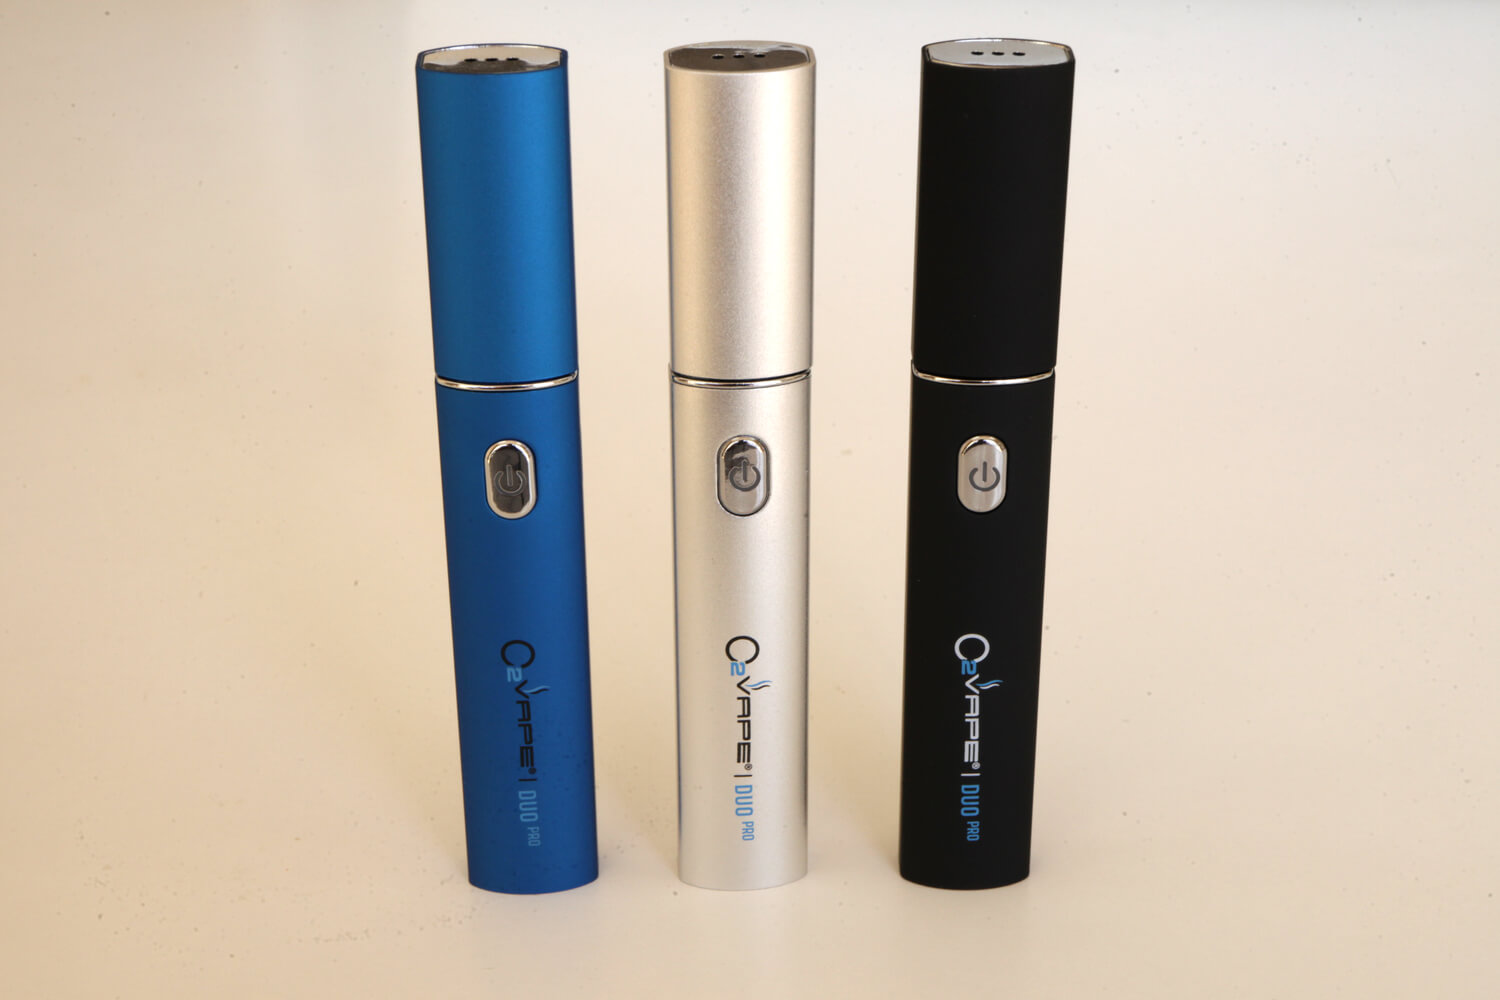 o2vape duo wax and dab pens